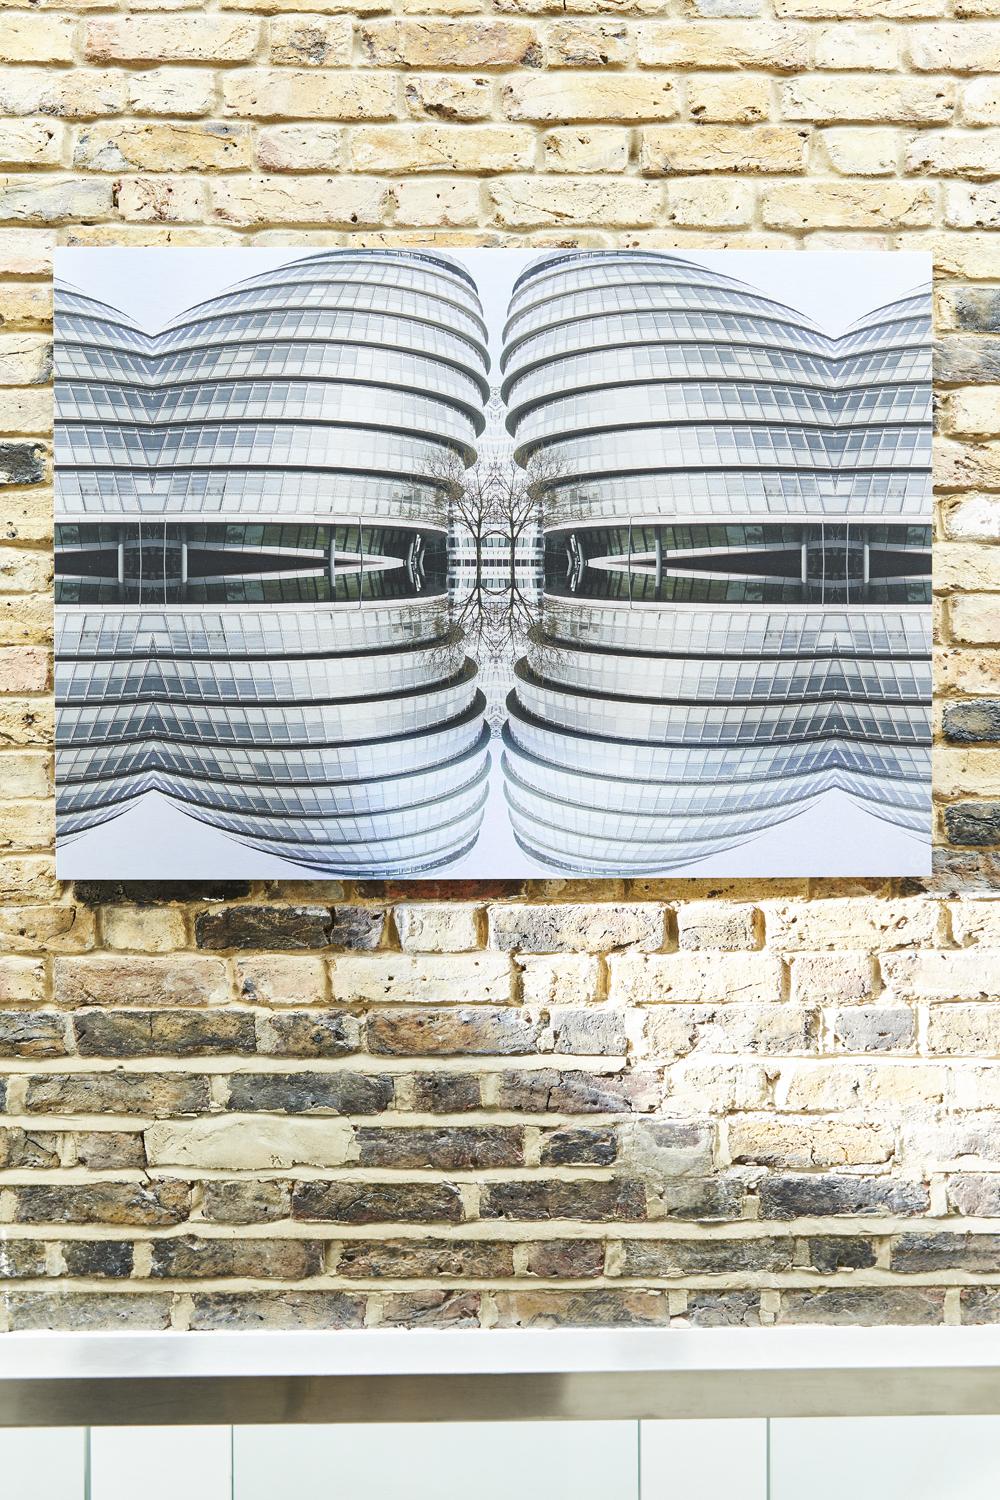 GLA Strong and sculptural - An incredible building in it's own right - I was asked to design a picture using the City Hall for a lady who was looking for a picture as a special gift for her husband's anniversary present as he had been involved in it's construction.